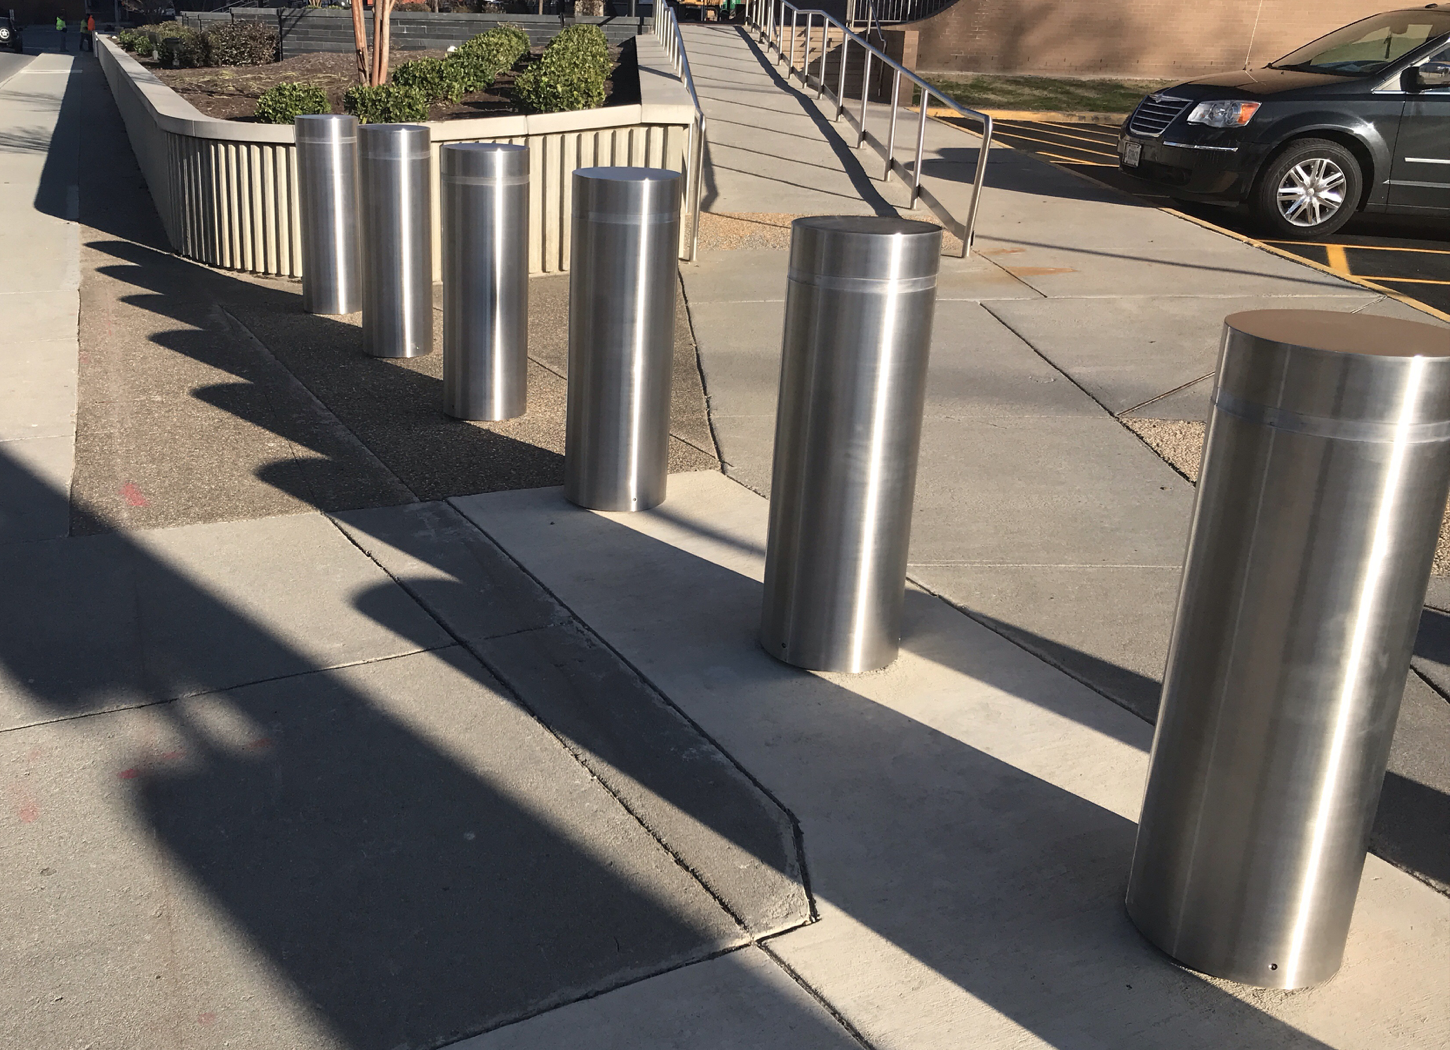 Stainless Steel Bollard Covers on TrafficProtectors